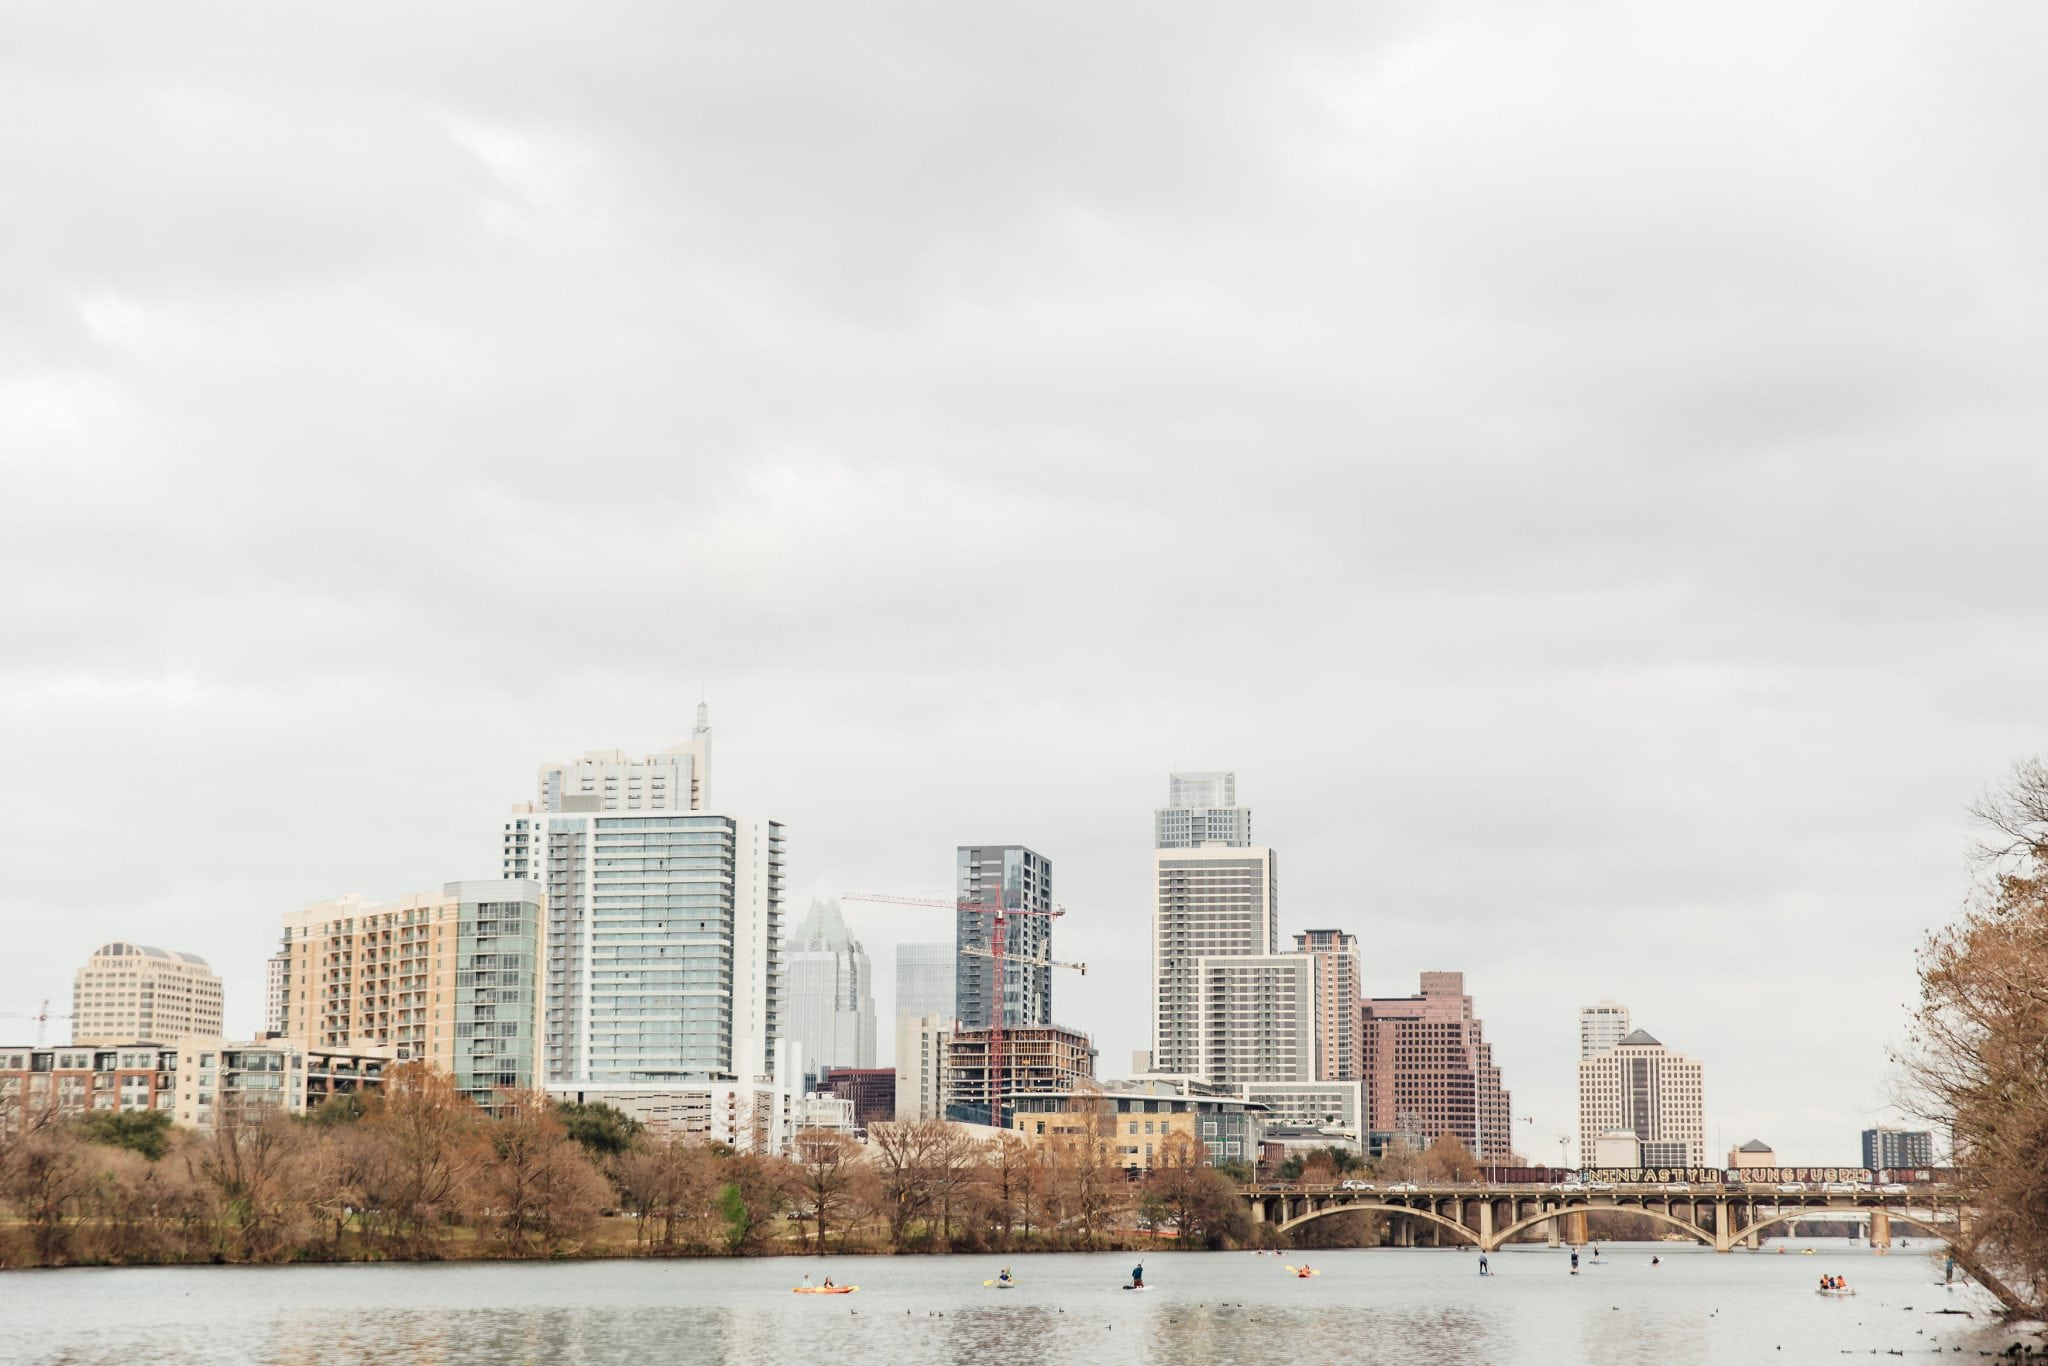 48 hours in Austin, Texas